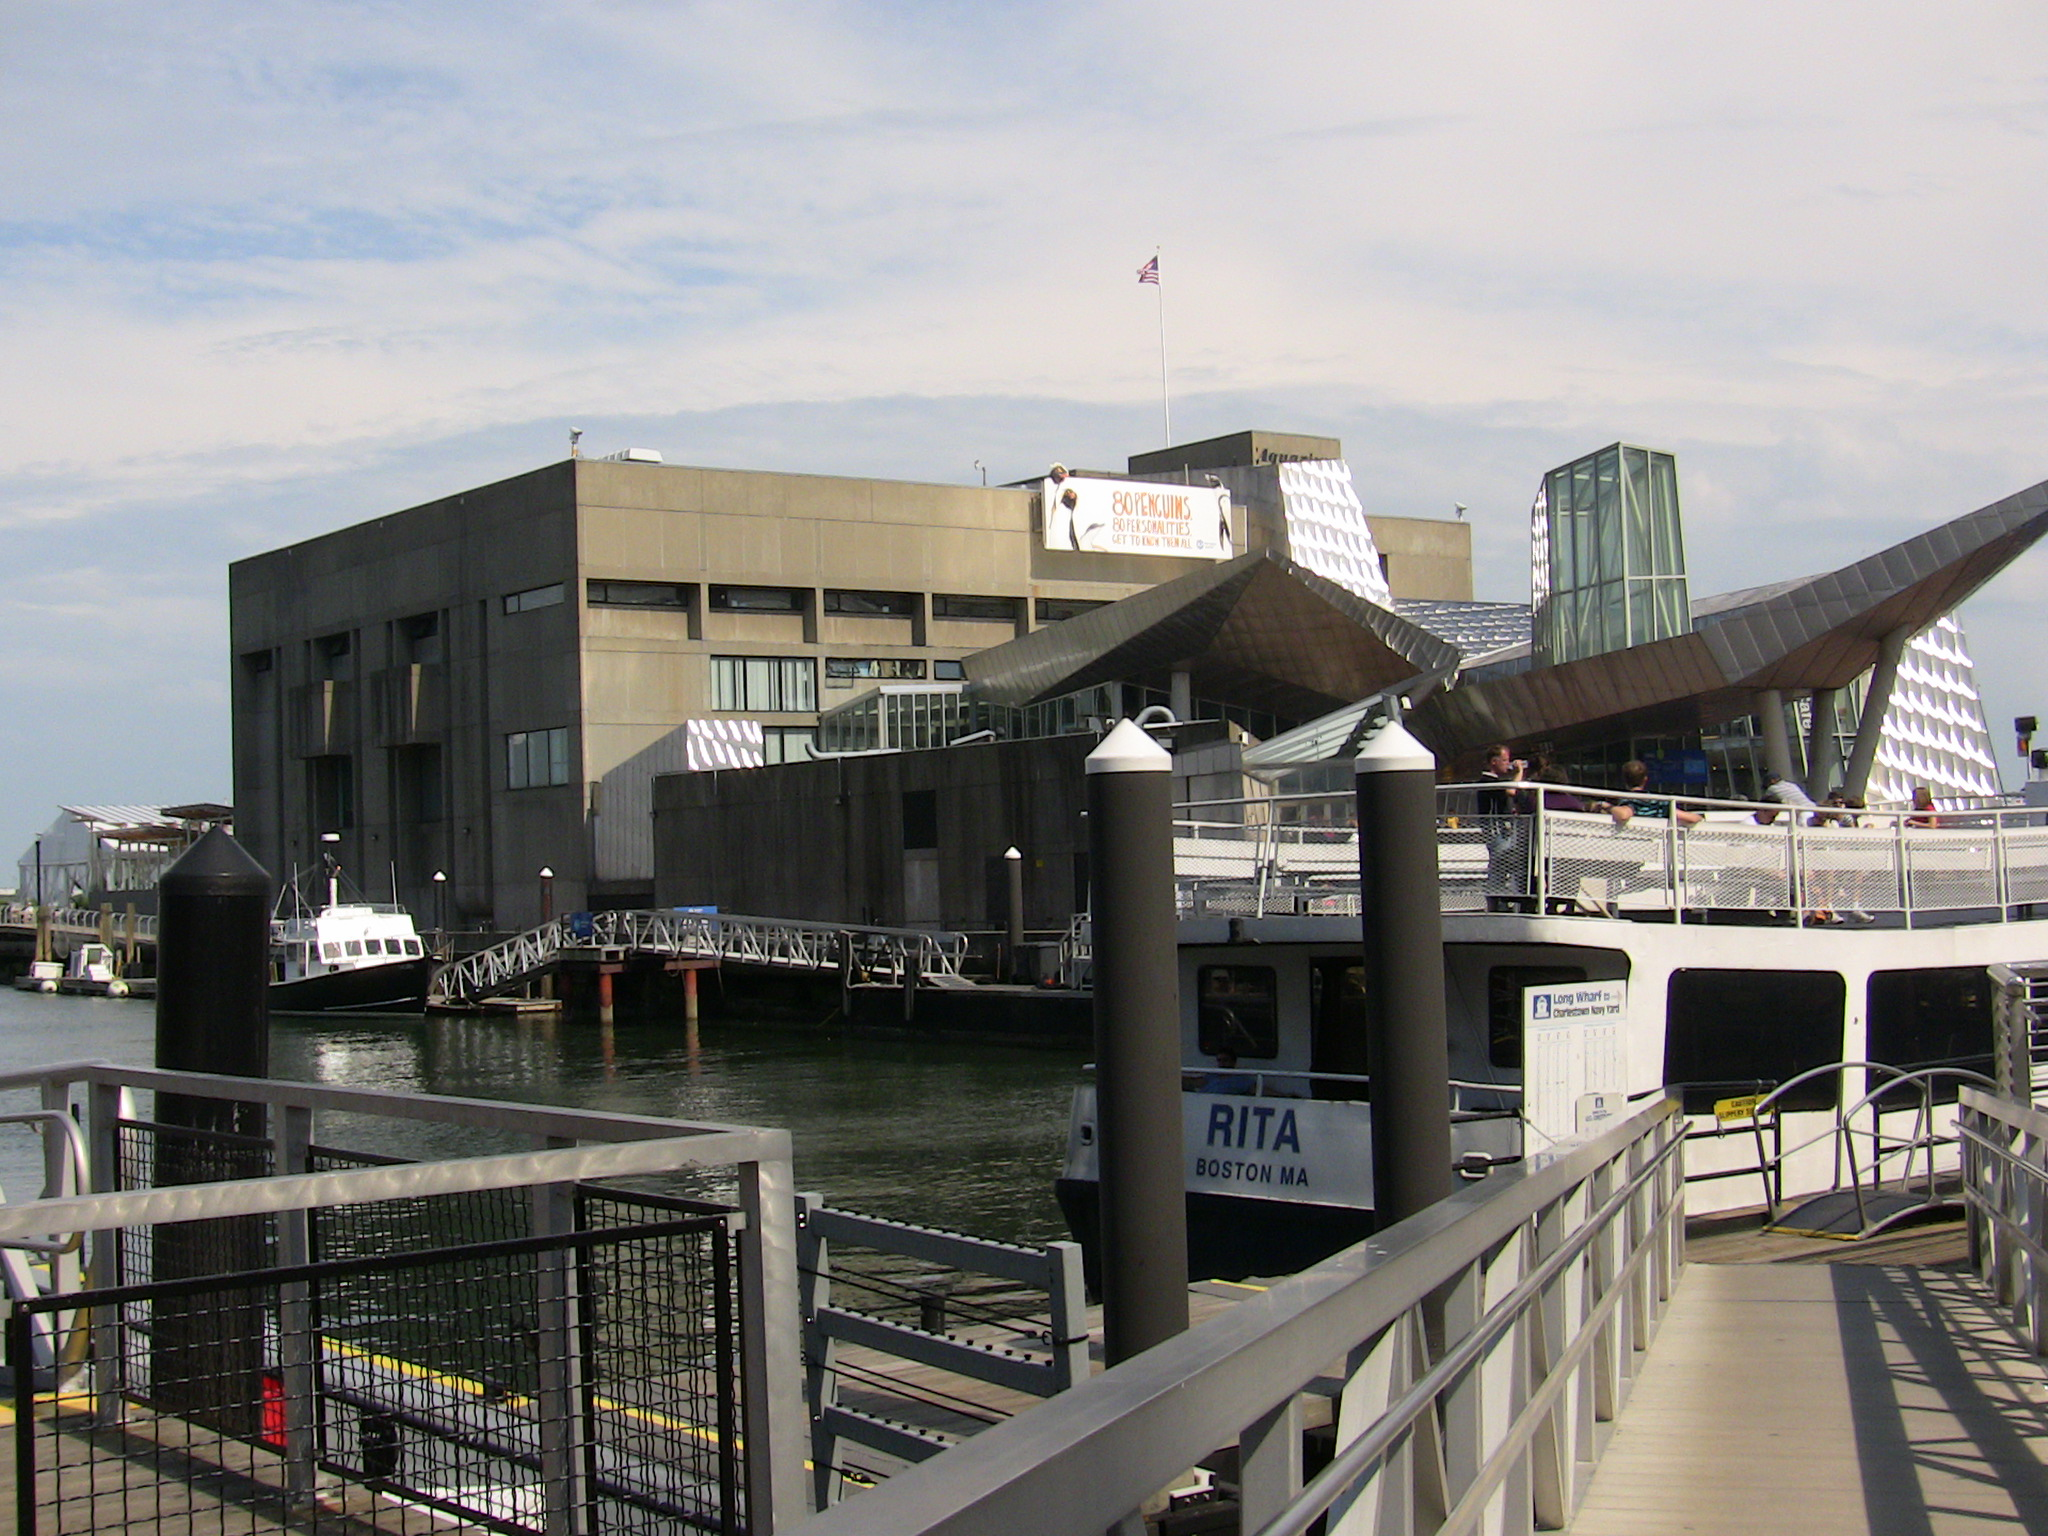 File:2010 aquarium BostonMA 5445801293.jpg - Wikimedia Commons